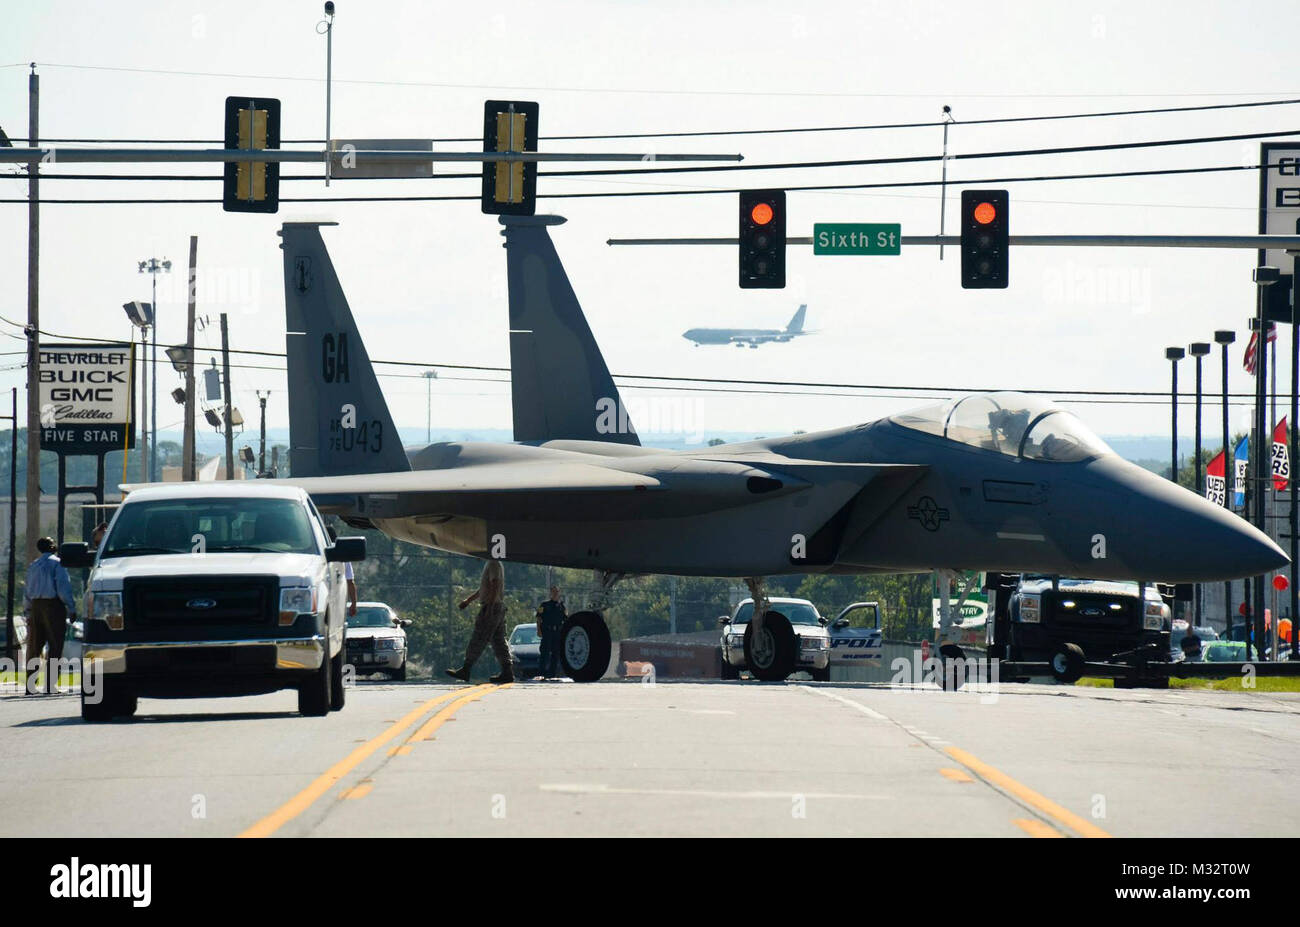 Airmen from the 116th Maintenance Group, Georgia Air National Guard, maneuver through traffic lights while towing - Stock Image